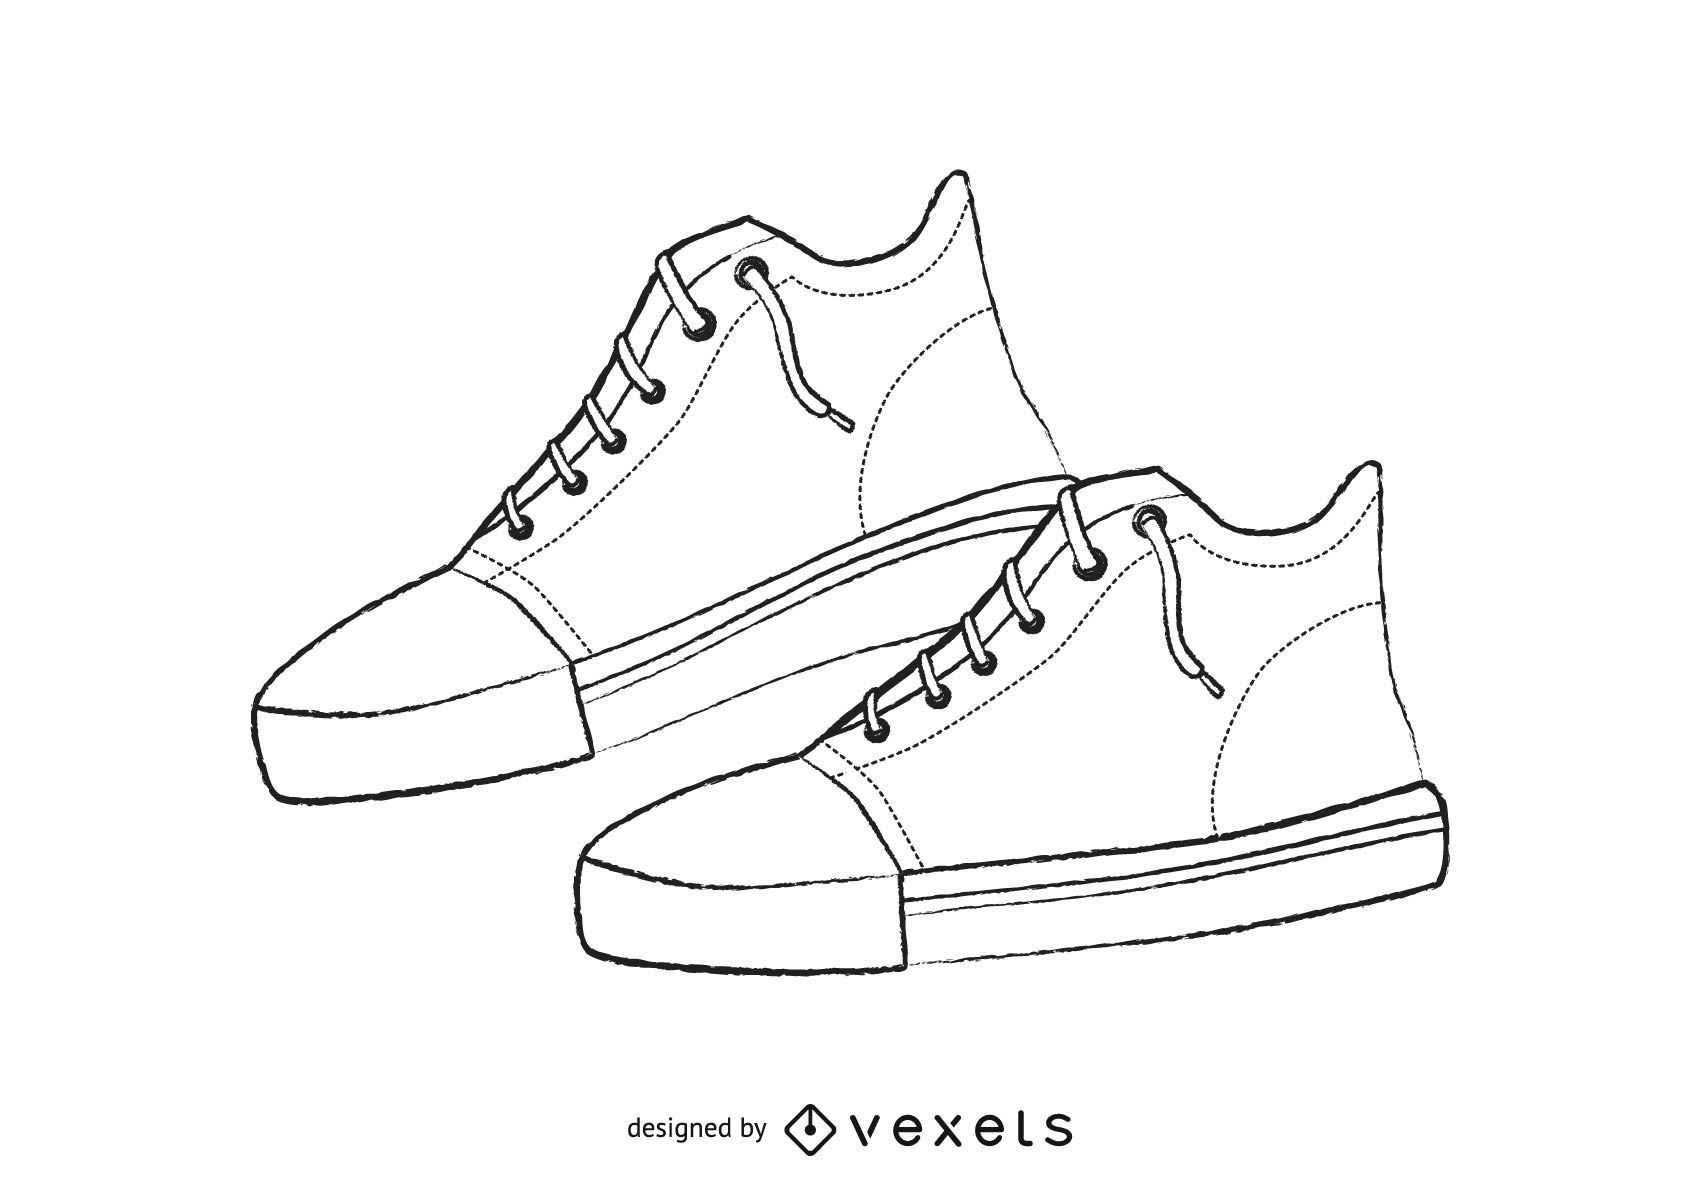 Rough Hand Drawn Illustrated Sneakers